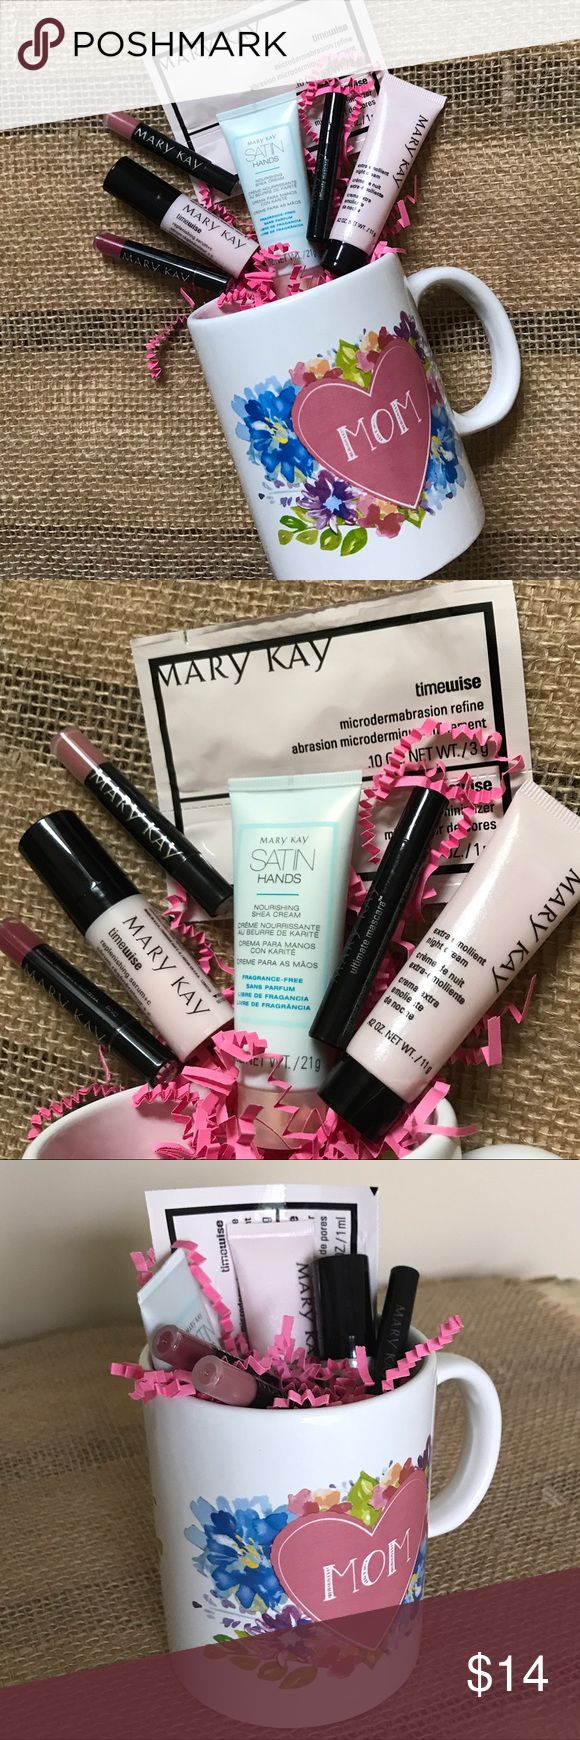 "Mary Kay Mother's Day Coffee Mug Sampler Gift ""MOM"" Coffee Mug filled with Mary Kay Deluxe Samples as pictured: 2 Mini Lip Gloss Ultimate Mascara, Black Microdermabrasion 2-step Satin Hands Lotion Extra Emollient Night Cream Replenishing Serum C ✅All items new / not expired ❌NOT for individual sale! Only selling together as pictured ❌ NO trades! Price IS firm unless bundled. Mary Kay Makeup"